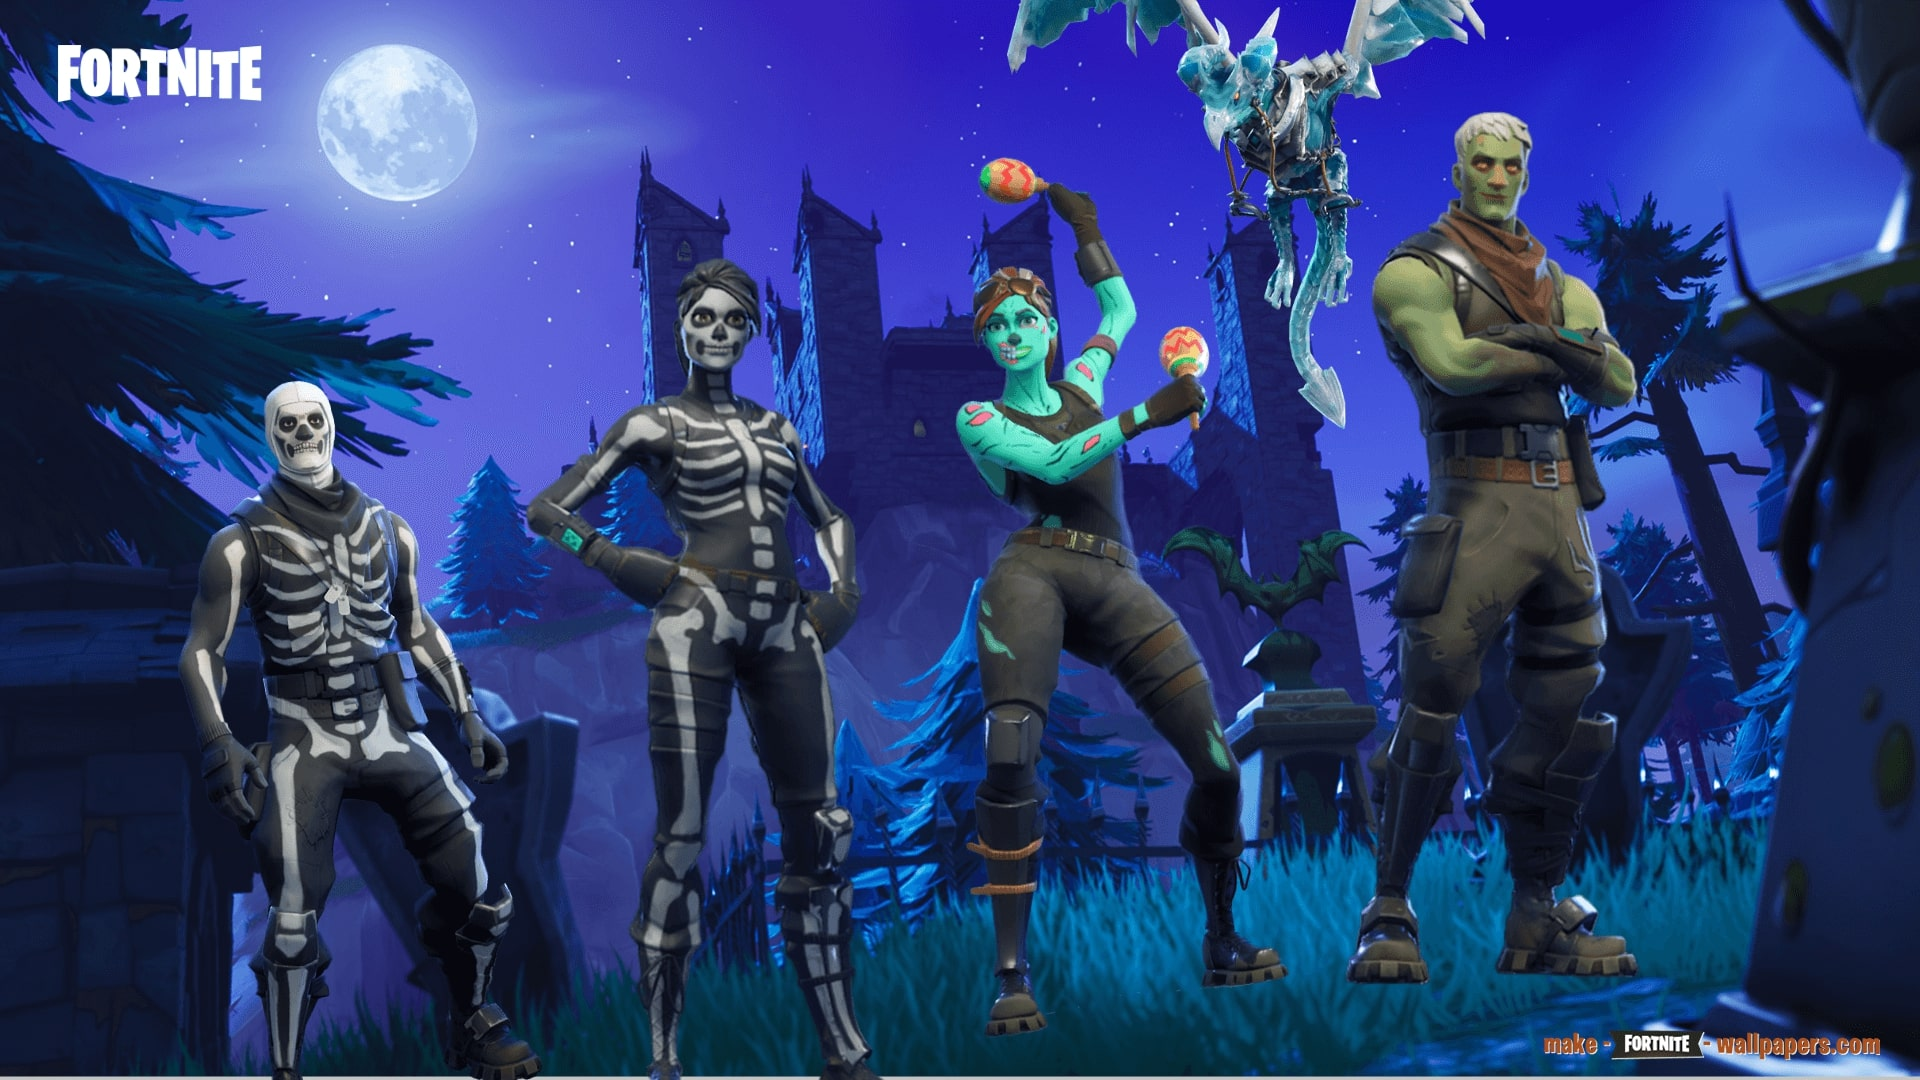 Fortnite Halloween Background Posted By Ethan Thompson